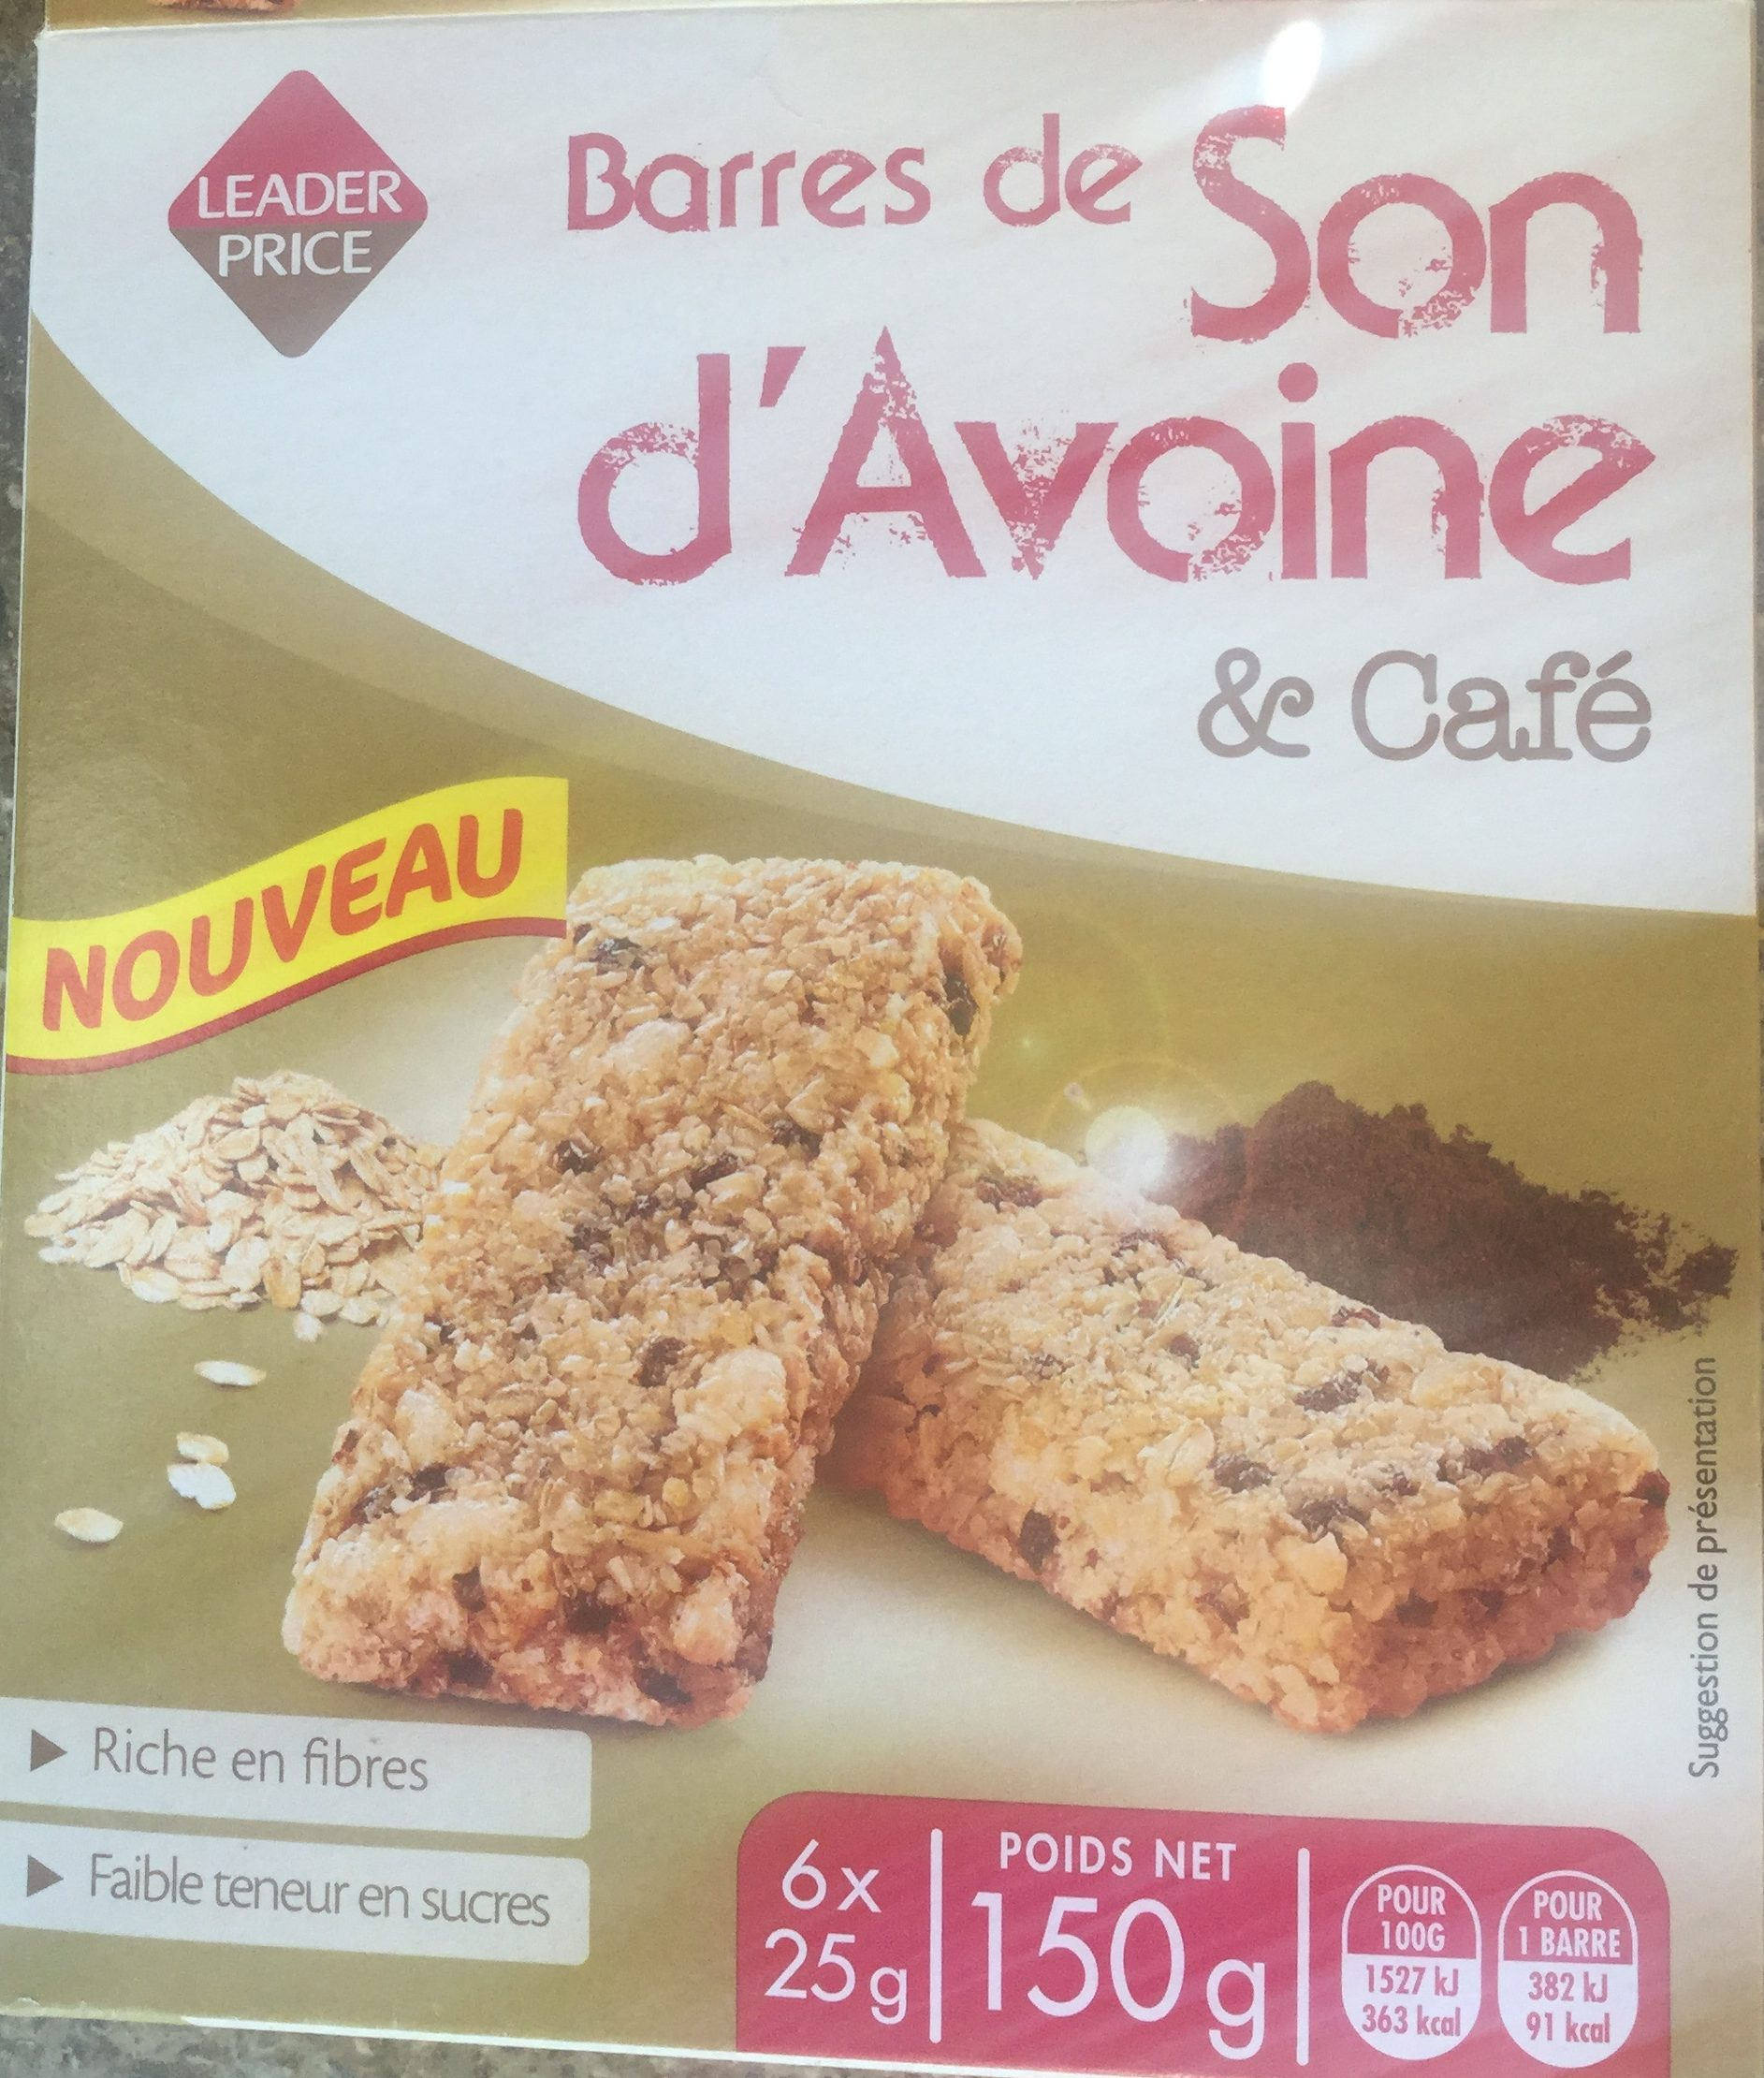 Barres de son d'avoine et café - Product